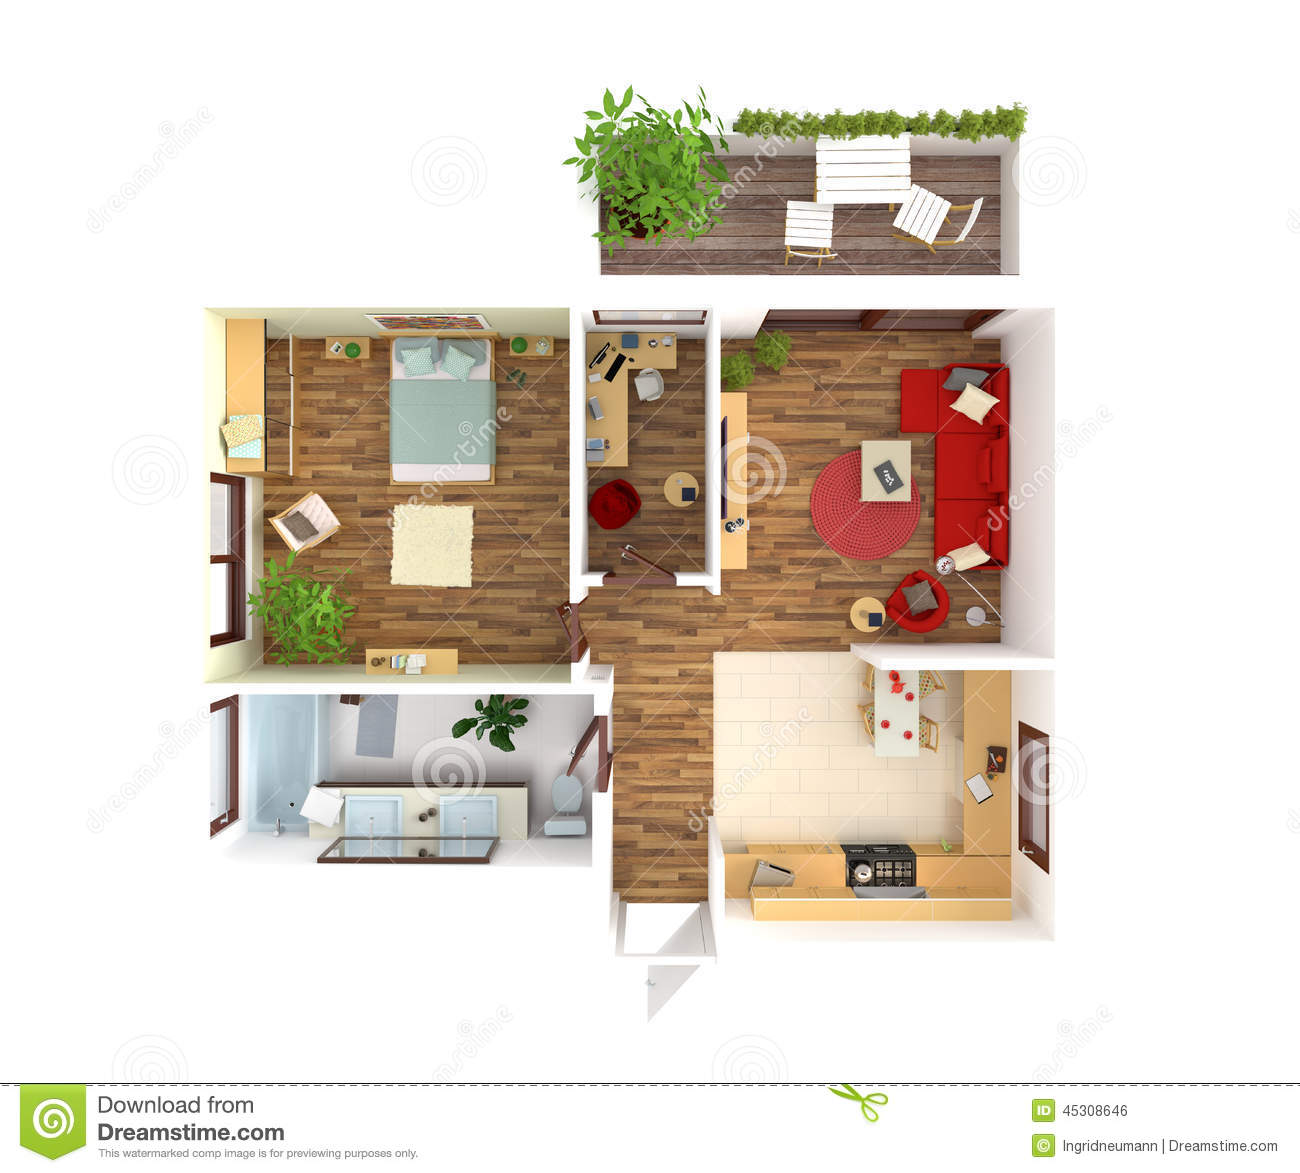 House plan top view interior design stock illustration for Two bedroom hall kitchen house plans